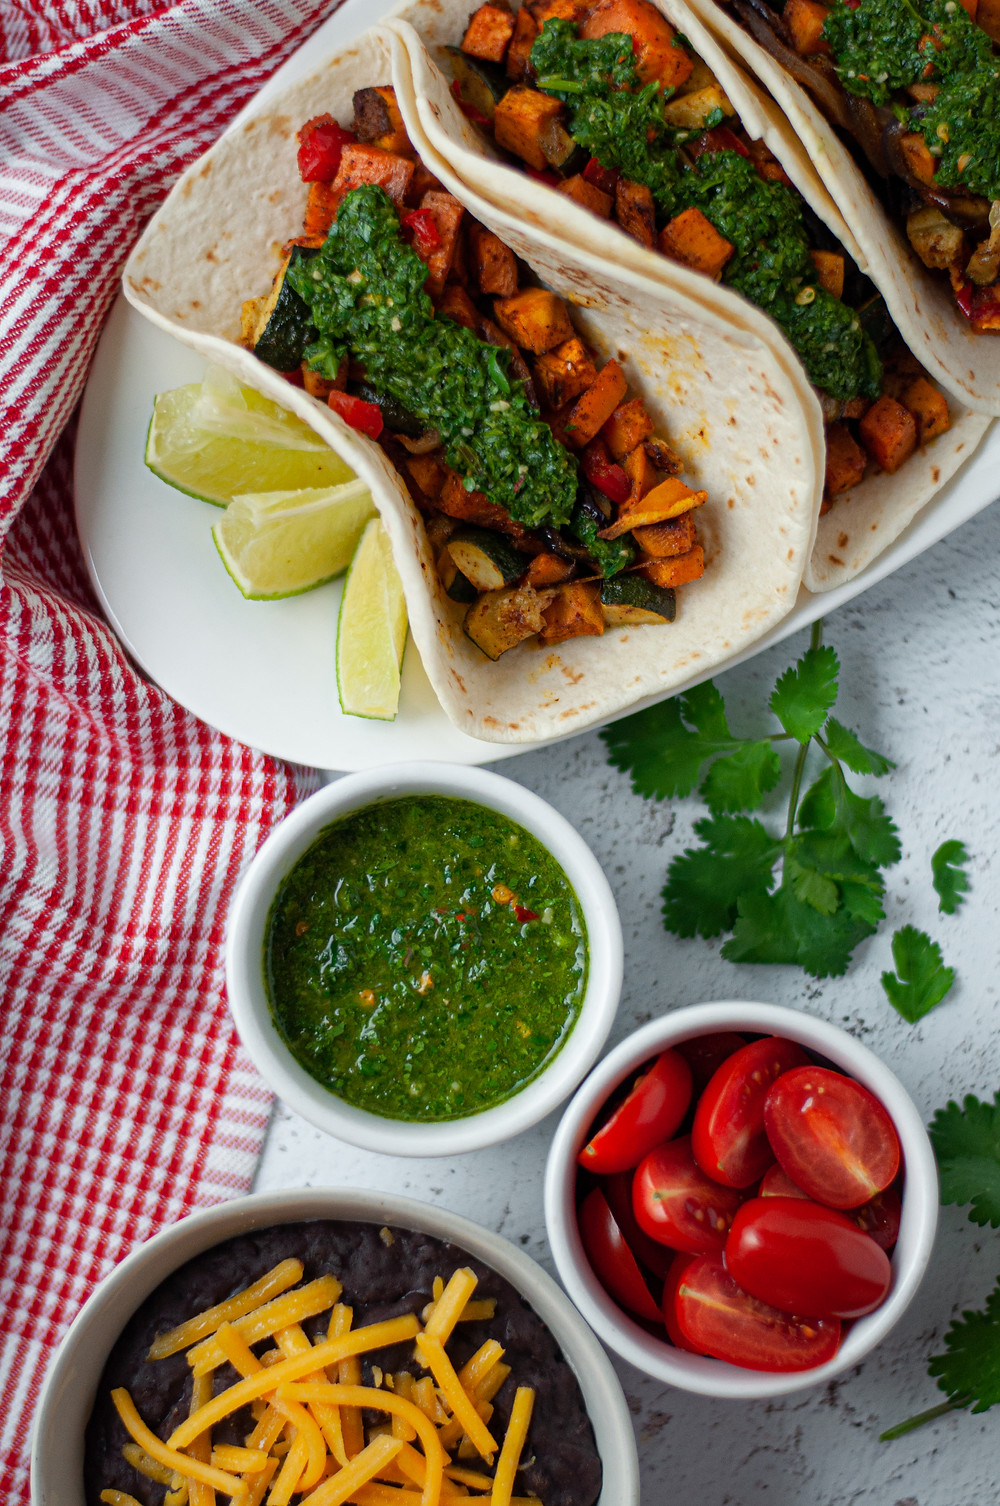 Top down view of three vegetable tacos served with a side of lime wedges, chimichurri sauce, tomatoes, and a side of refried beans